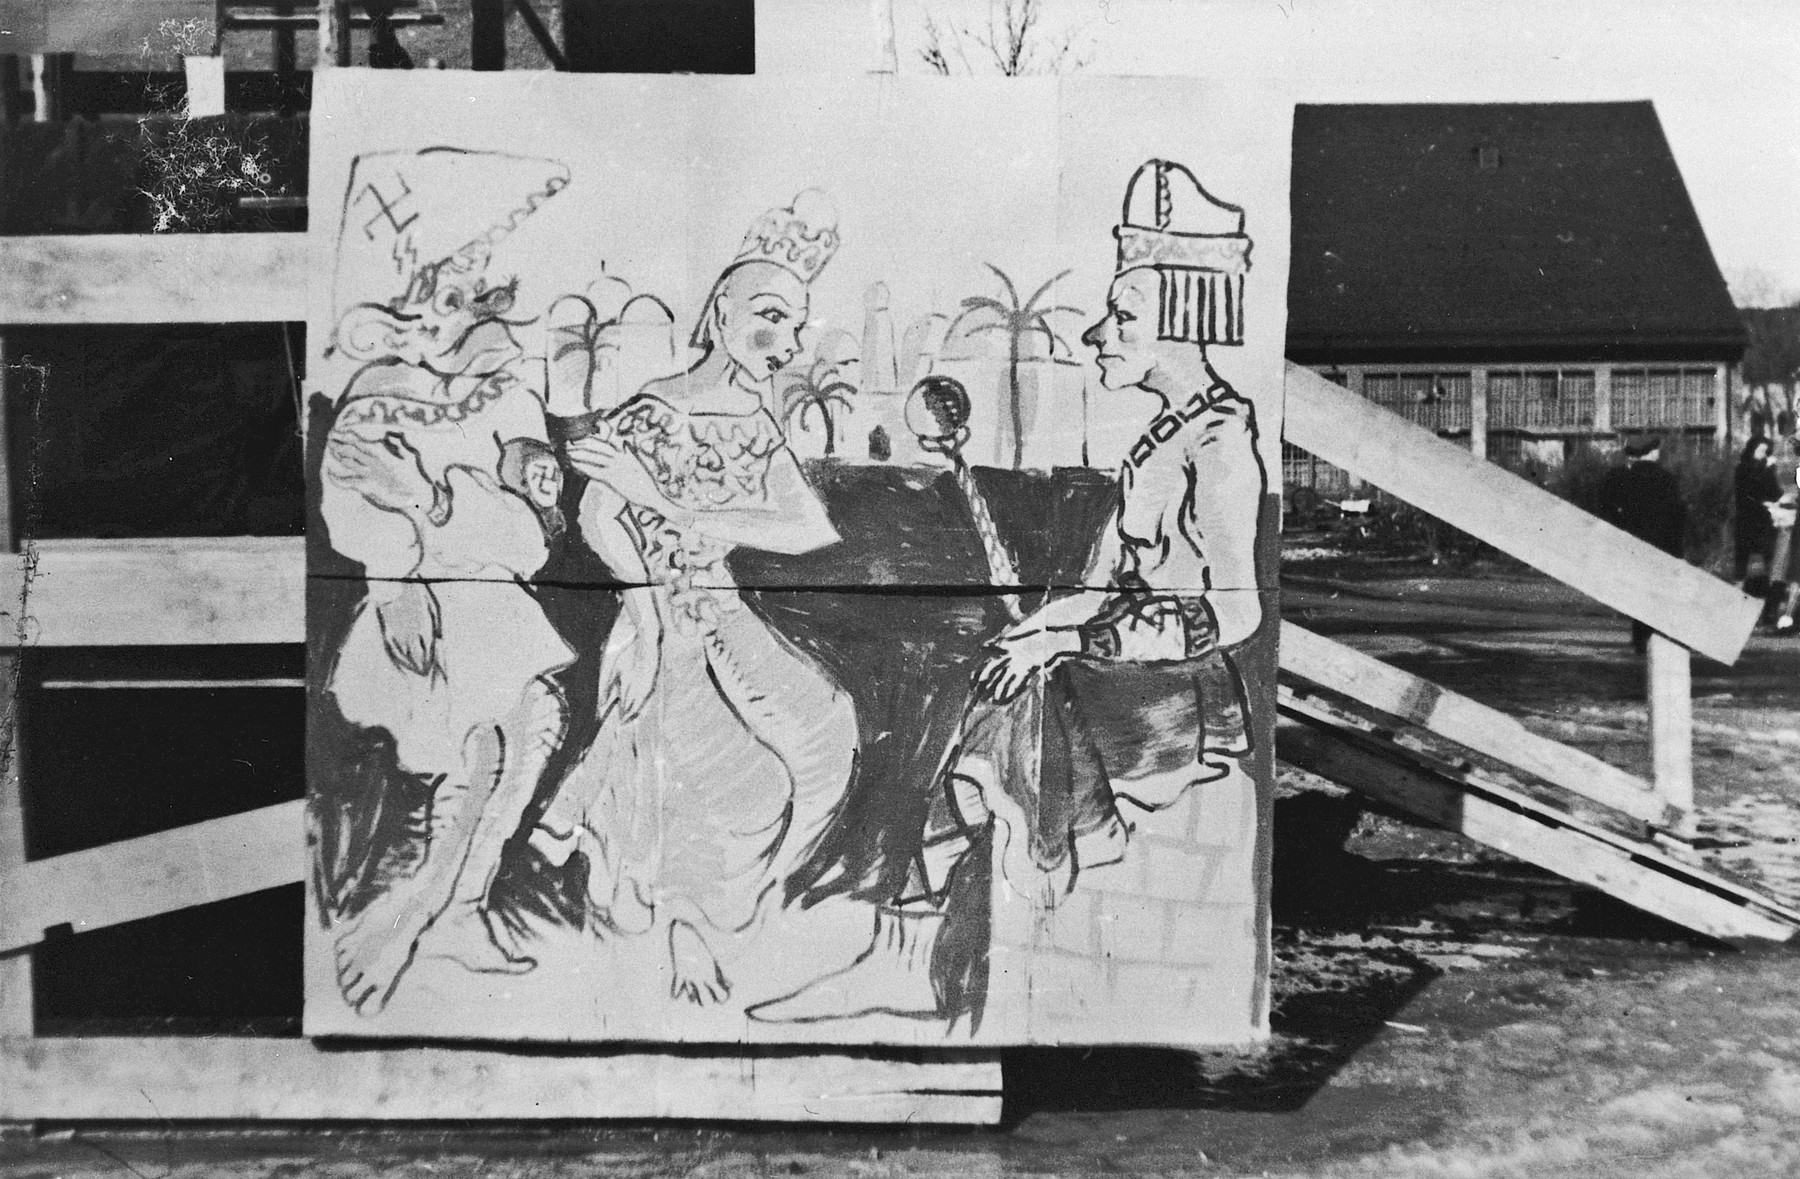 Photograph of a large poster in the Landsberg DP camp displayed during a Purim celebration showing a scene from the Purim story, only with the villain Haman wearing a hat with a swastika and a Nazi armband.